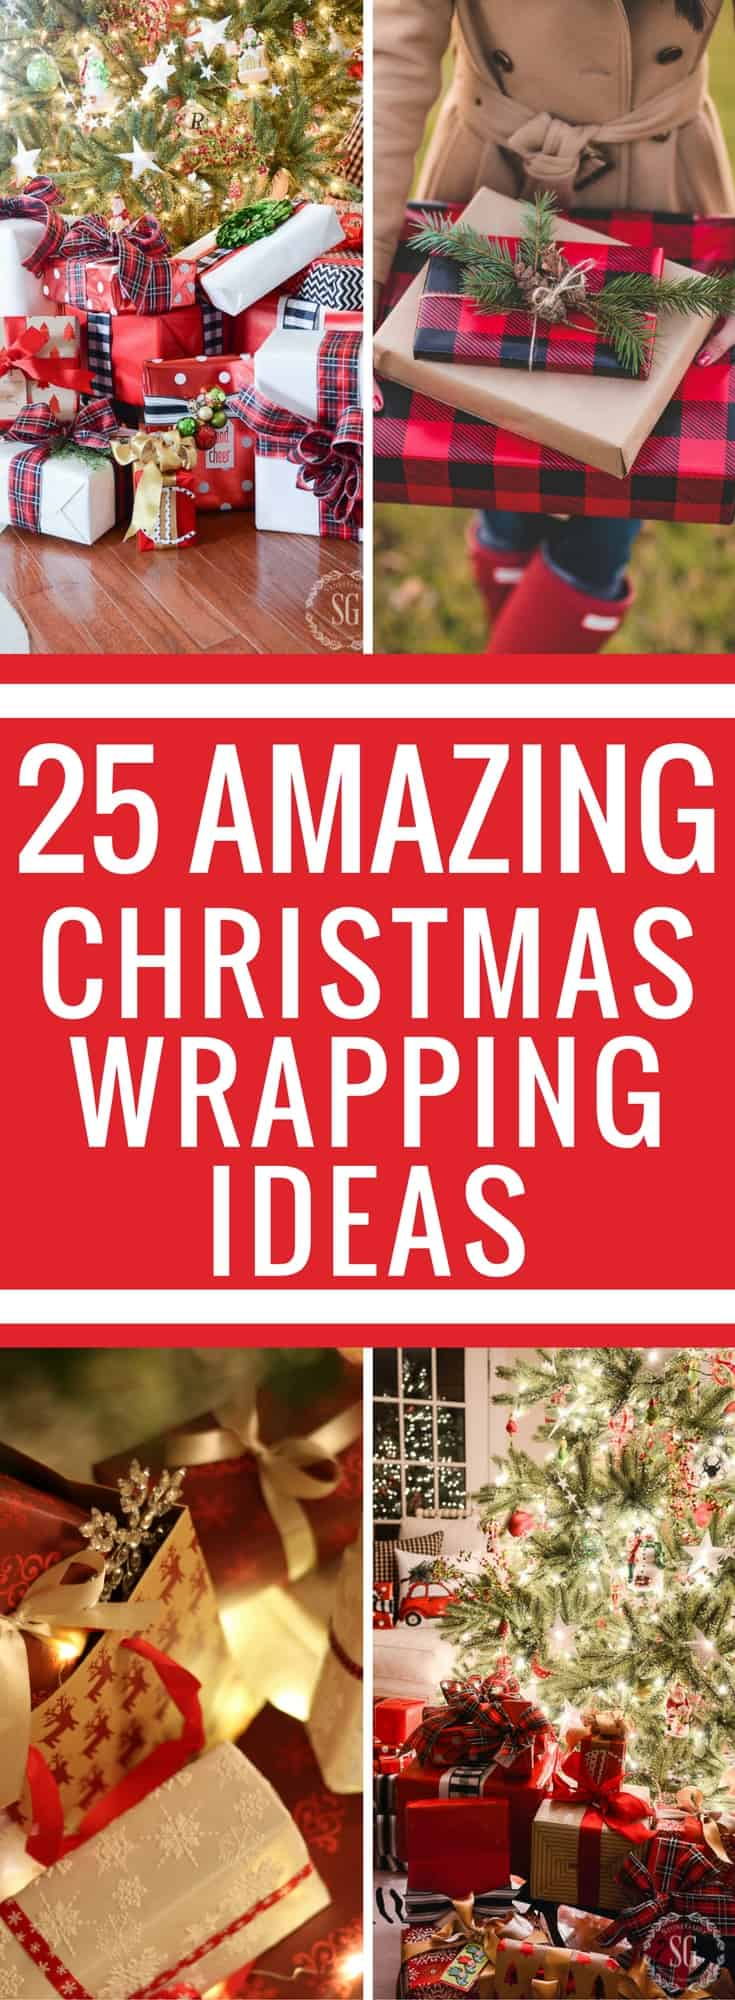 Unique gift wrapping ideas to bring your wrapping skills to the next level. Personalize your gift wrapping with these 25 gift wrapping ideas. Rather it is wrapping Christmas gifts or birthday gifts this list will give you plenty of ideas. Wrapping Ideas Christmas   Gift Wrapping   Gift Wrapping Ideas for Christmas   Gift Wrapping Ideas for Birthdays   Gift Wrapping Ideas   Gift Wrapping Ideas Creative   Christmas Gifts   DIY  